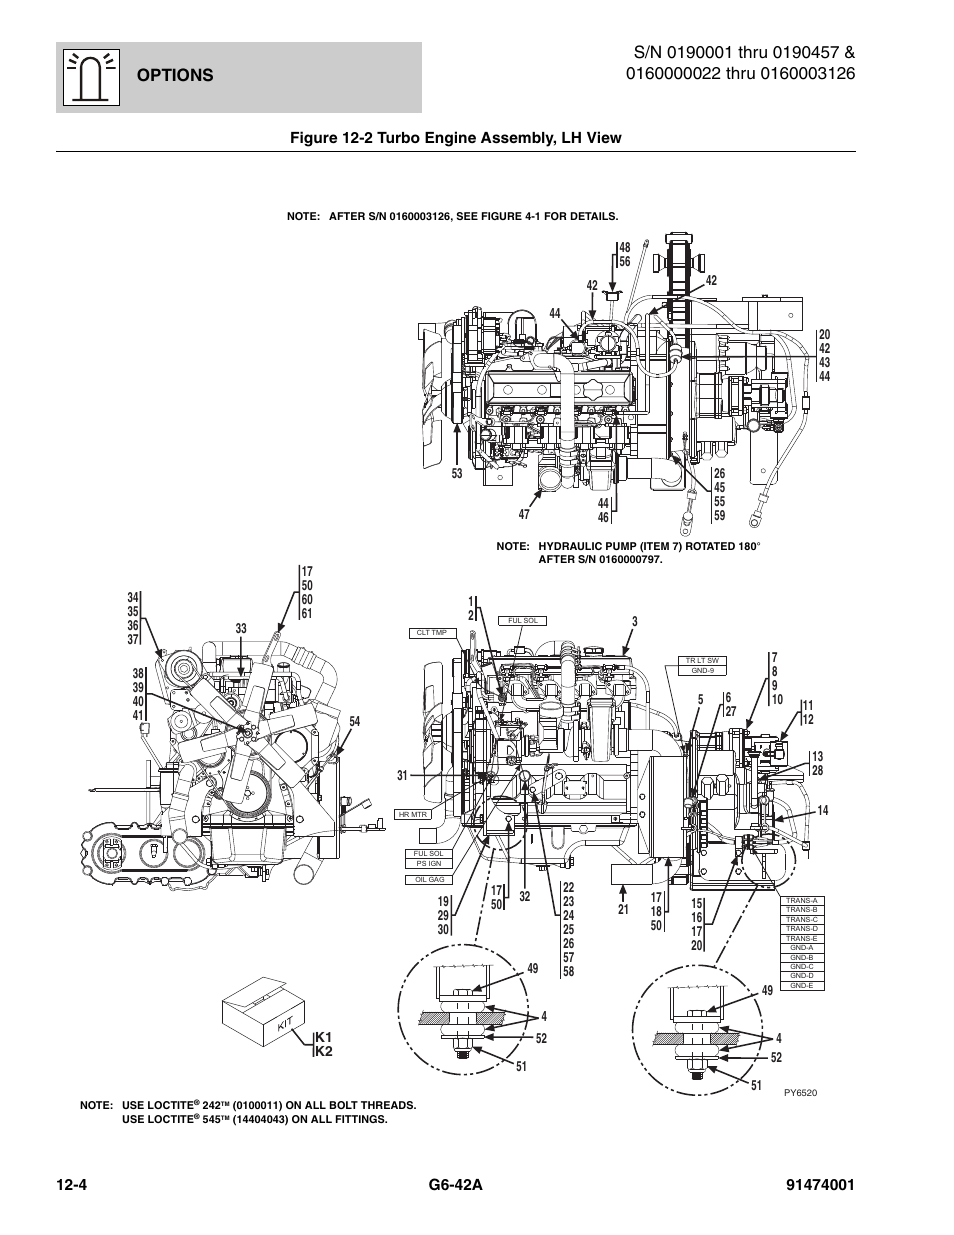 Figure 12-2 turbo engine assembly, lh view, Turbo engine